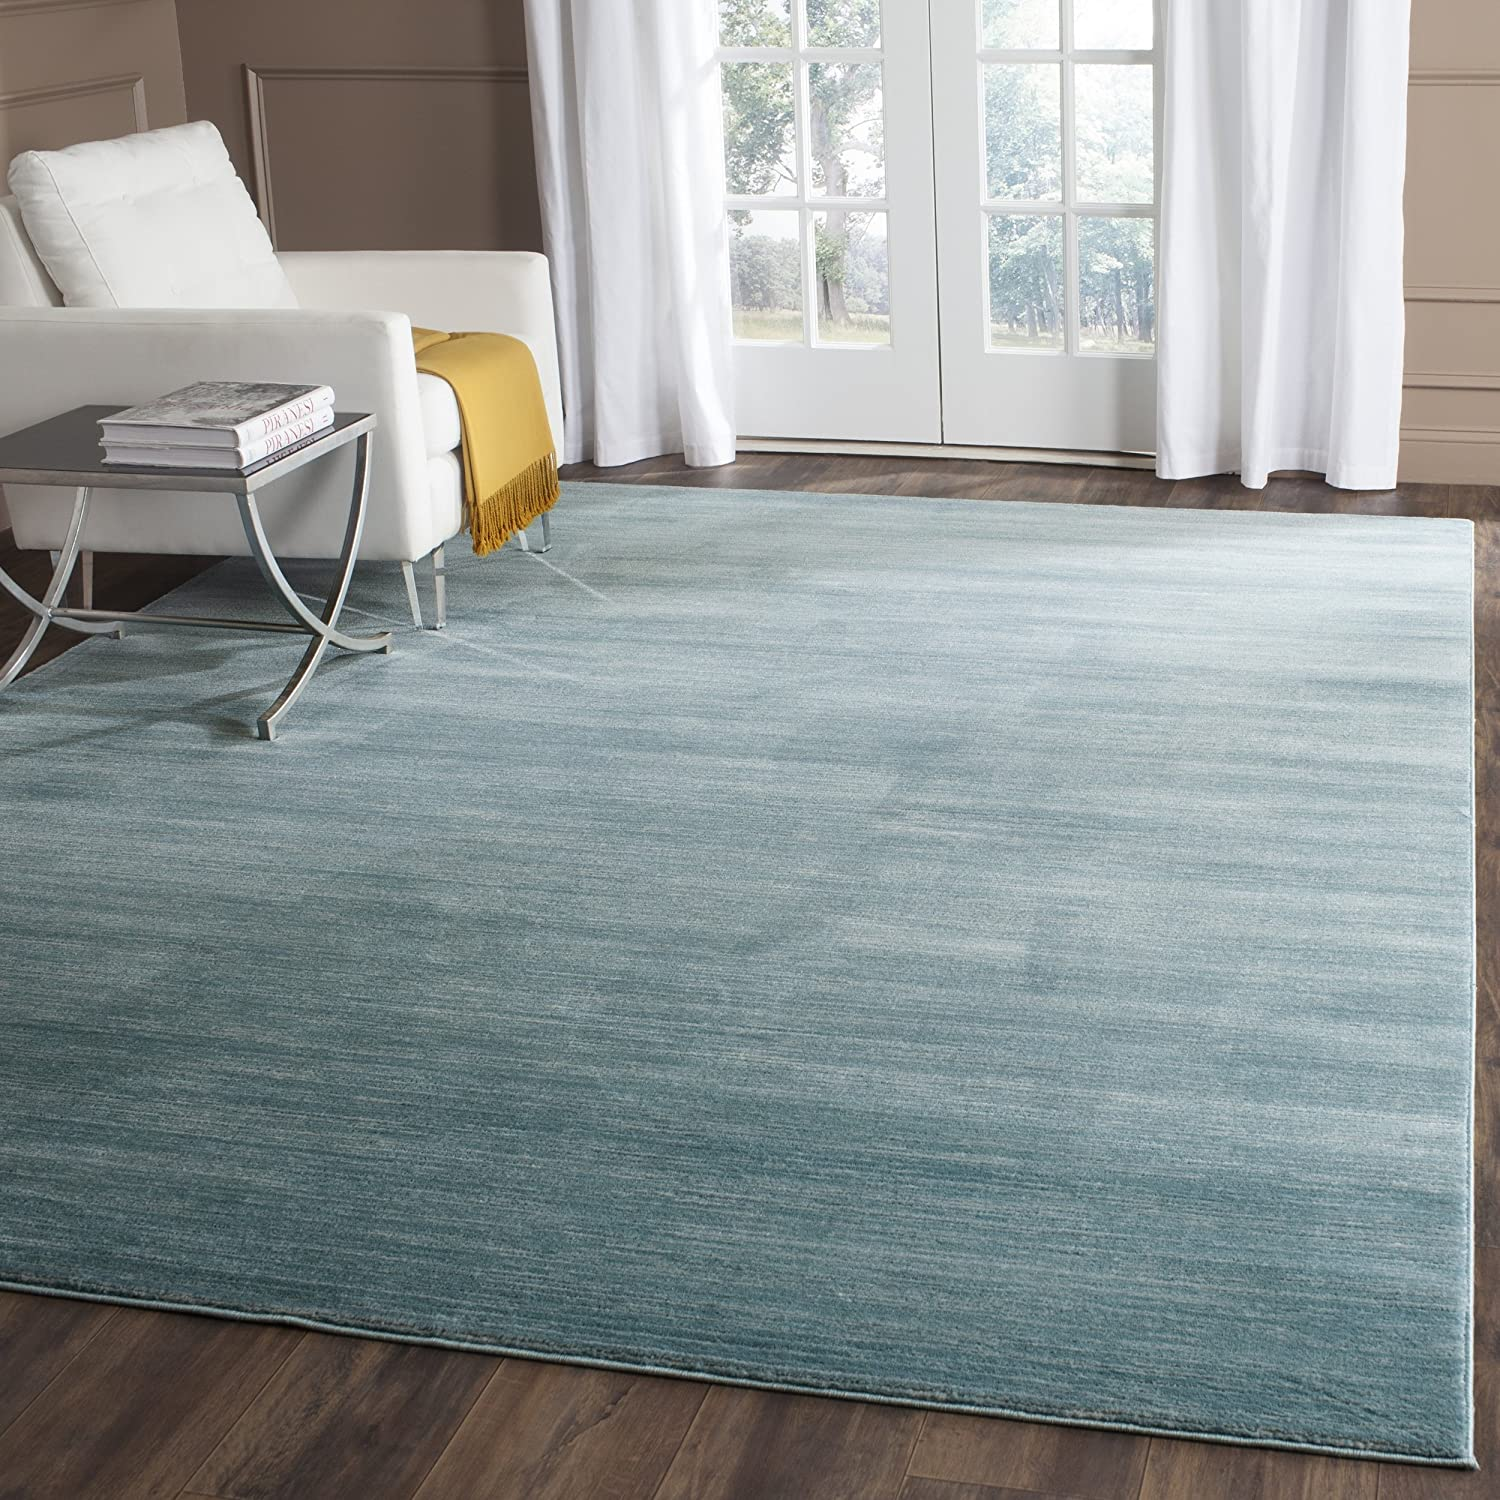 prepare popular wool impressive attractive in to x inspire accessories regard wonderful rug knotted oriental pertaining area rugs with hand for